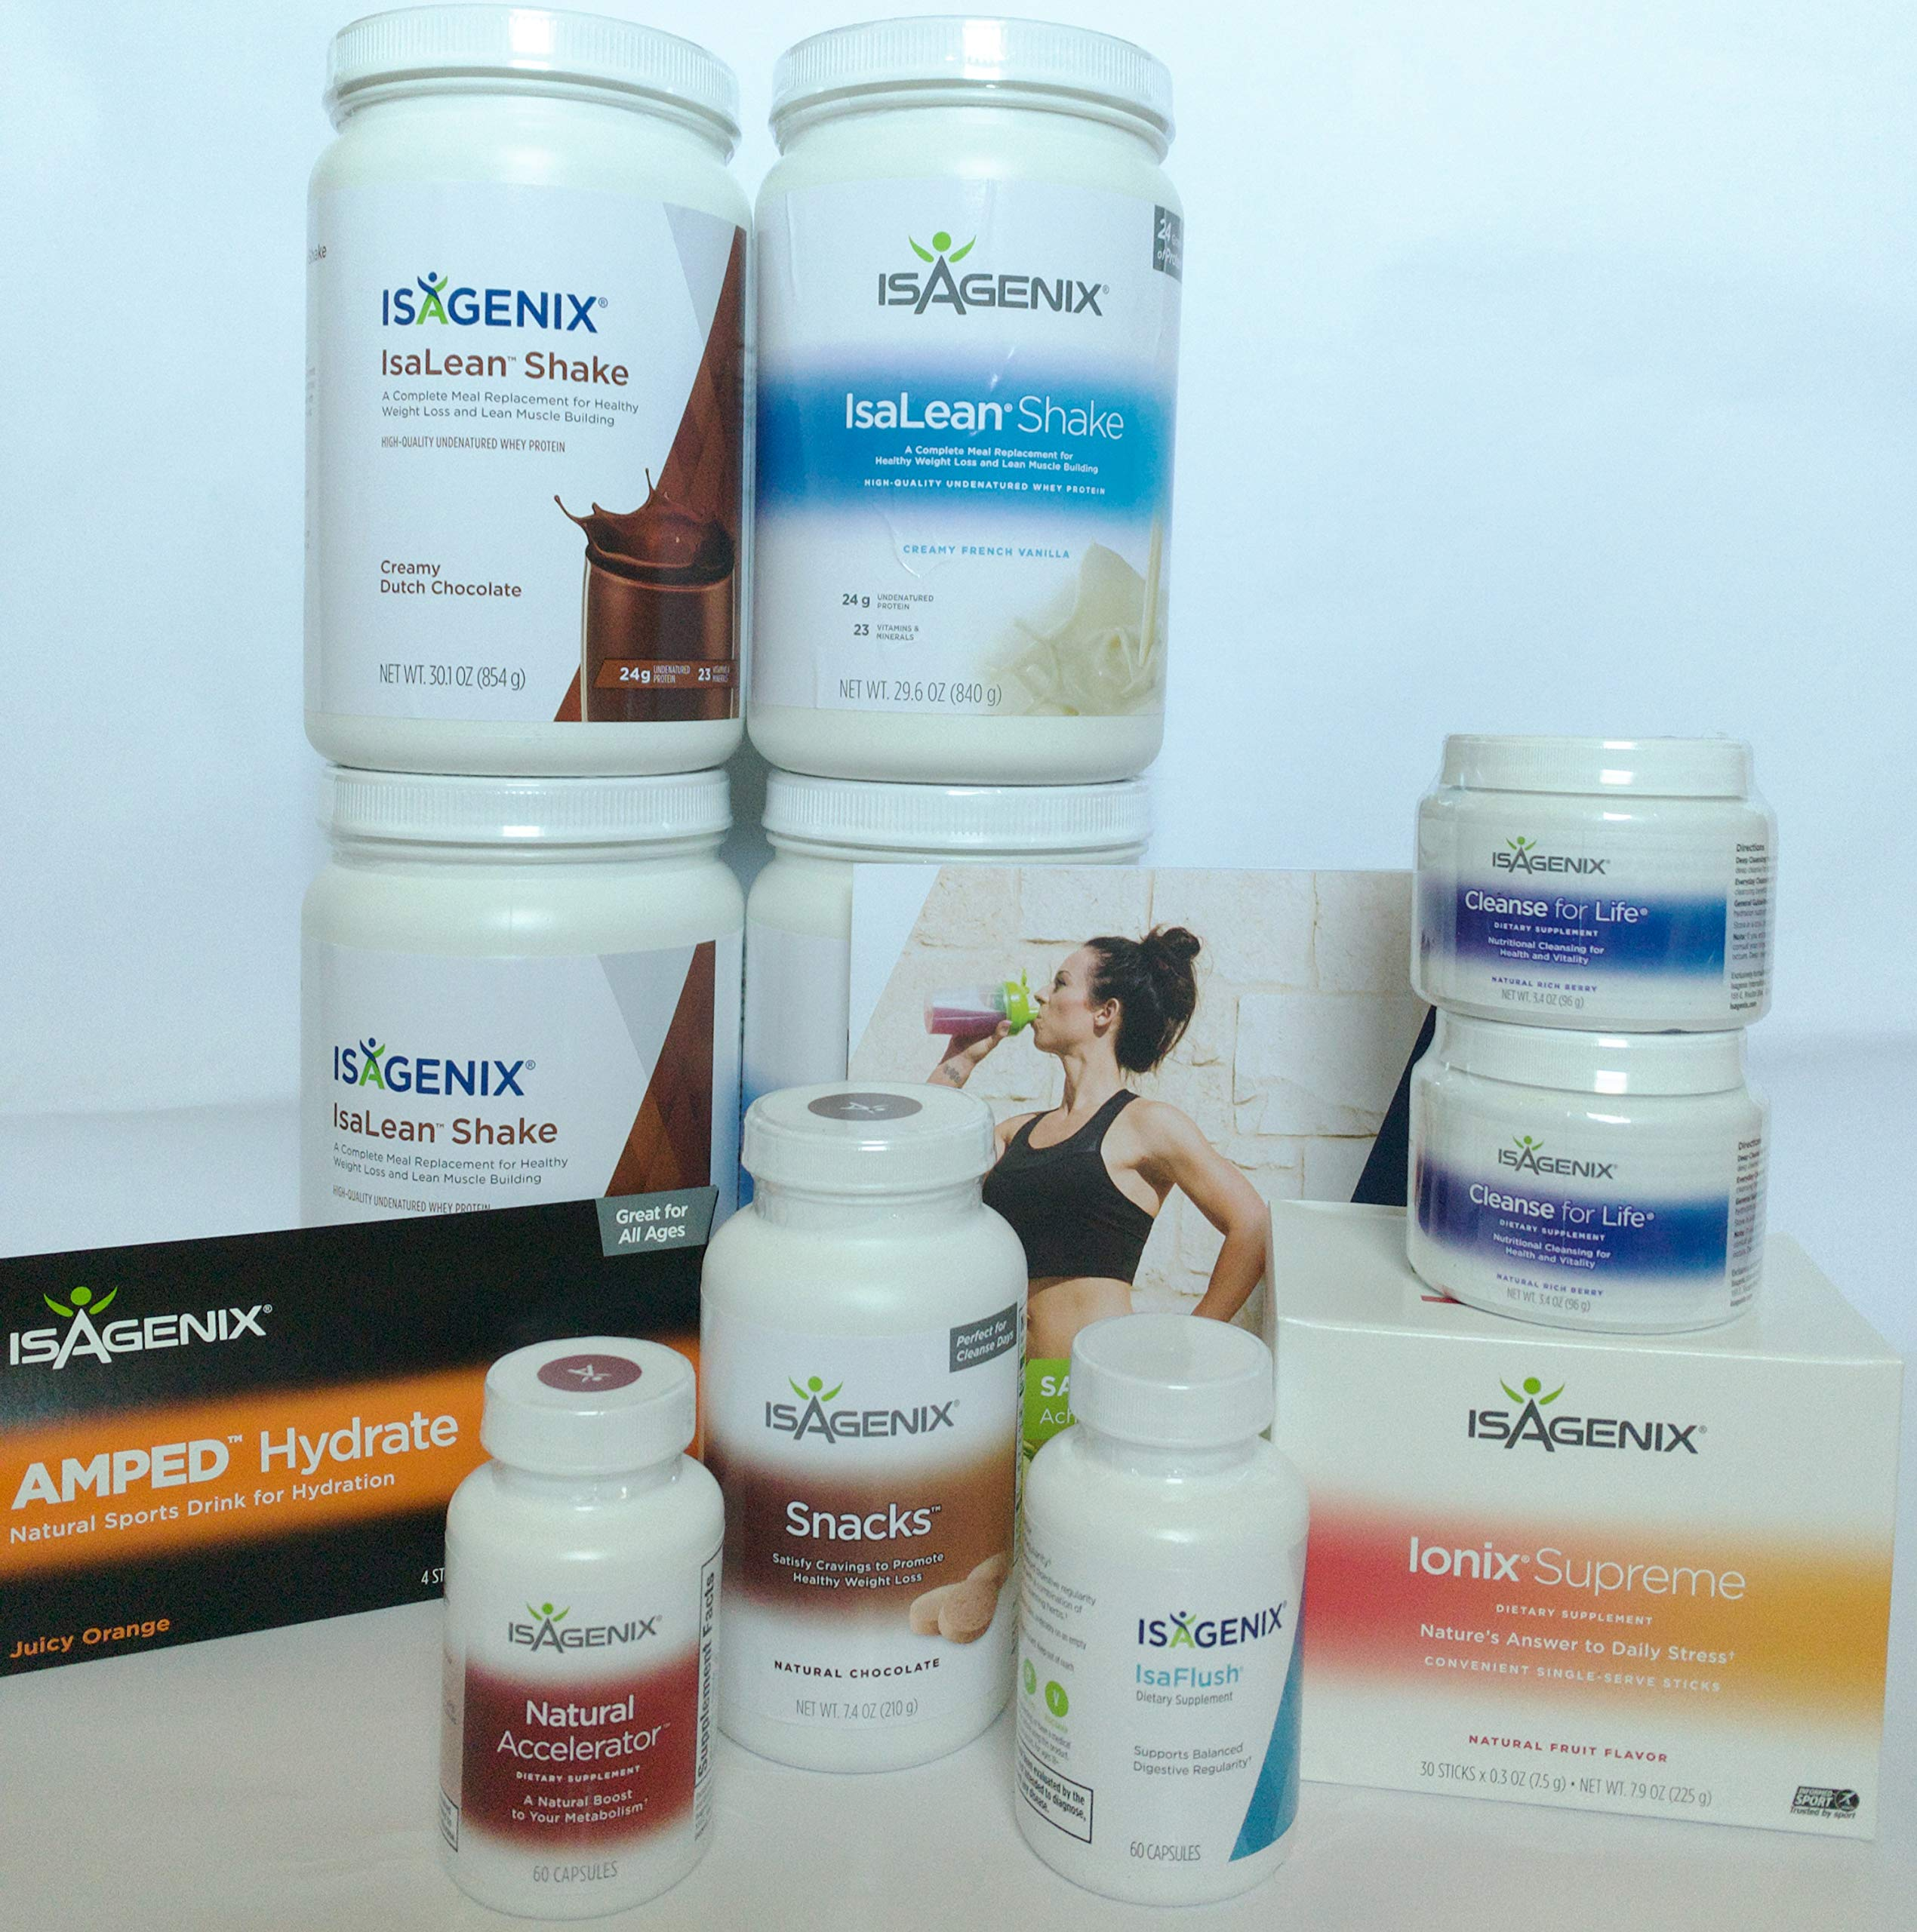 30 Day Weight Loss System with 2 Dutch Chocolate, 2 Creamy French Vanilla